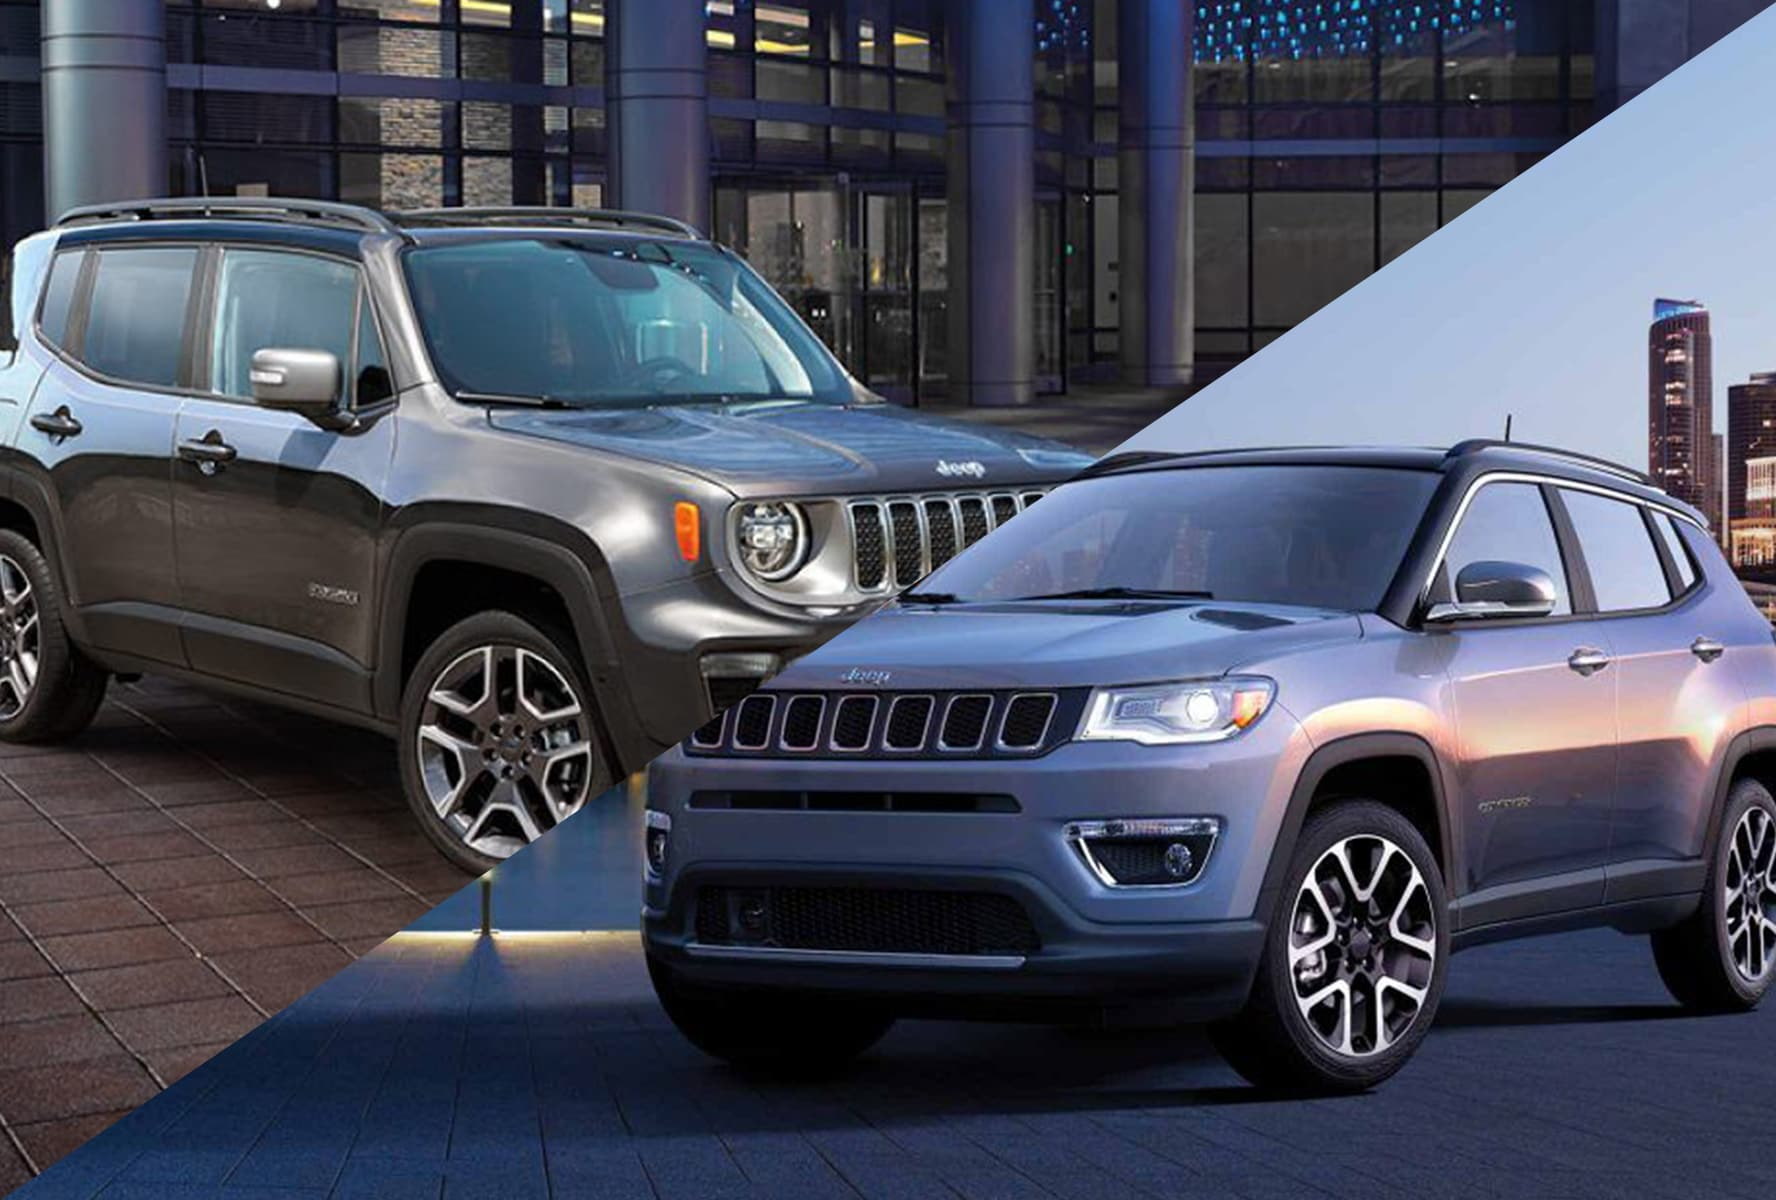 2019 Jeep Compass vs Renegade near Cincinnati, OH